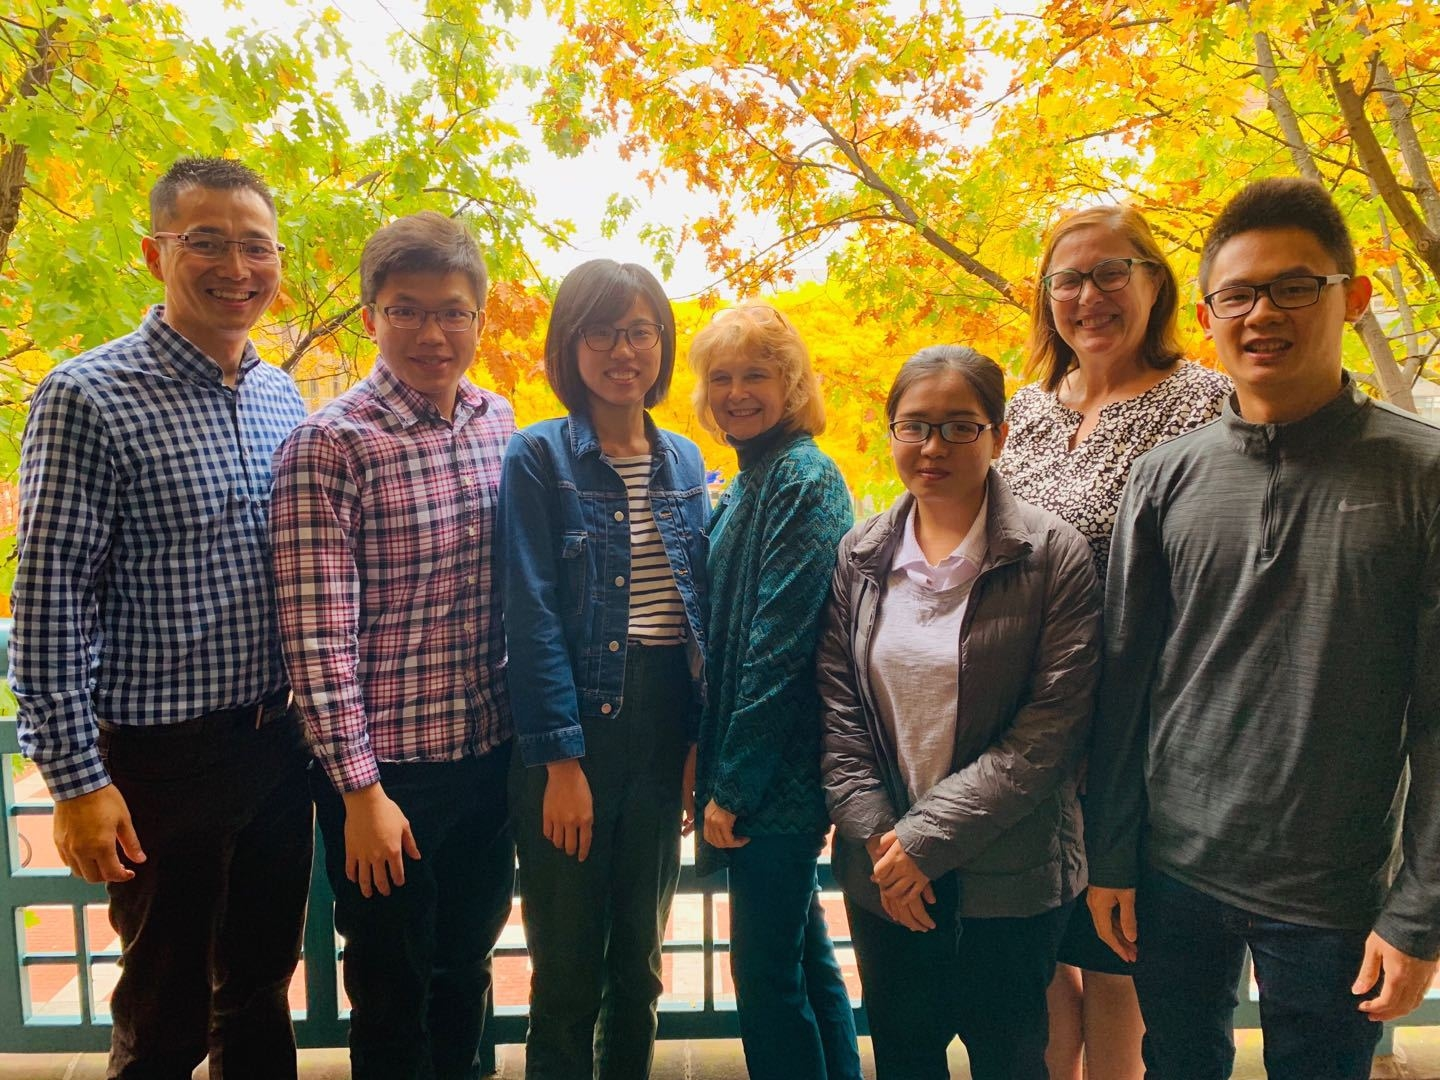 The four CTBC seniors studying at Wharton of Upenn, Liu (second from the left), Li (third from the left), Tsai (first of right), and Chen (thrid from right), taking photos with Wharton faculty in Upenn Campus